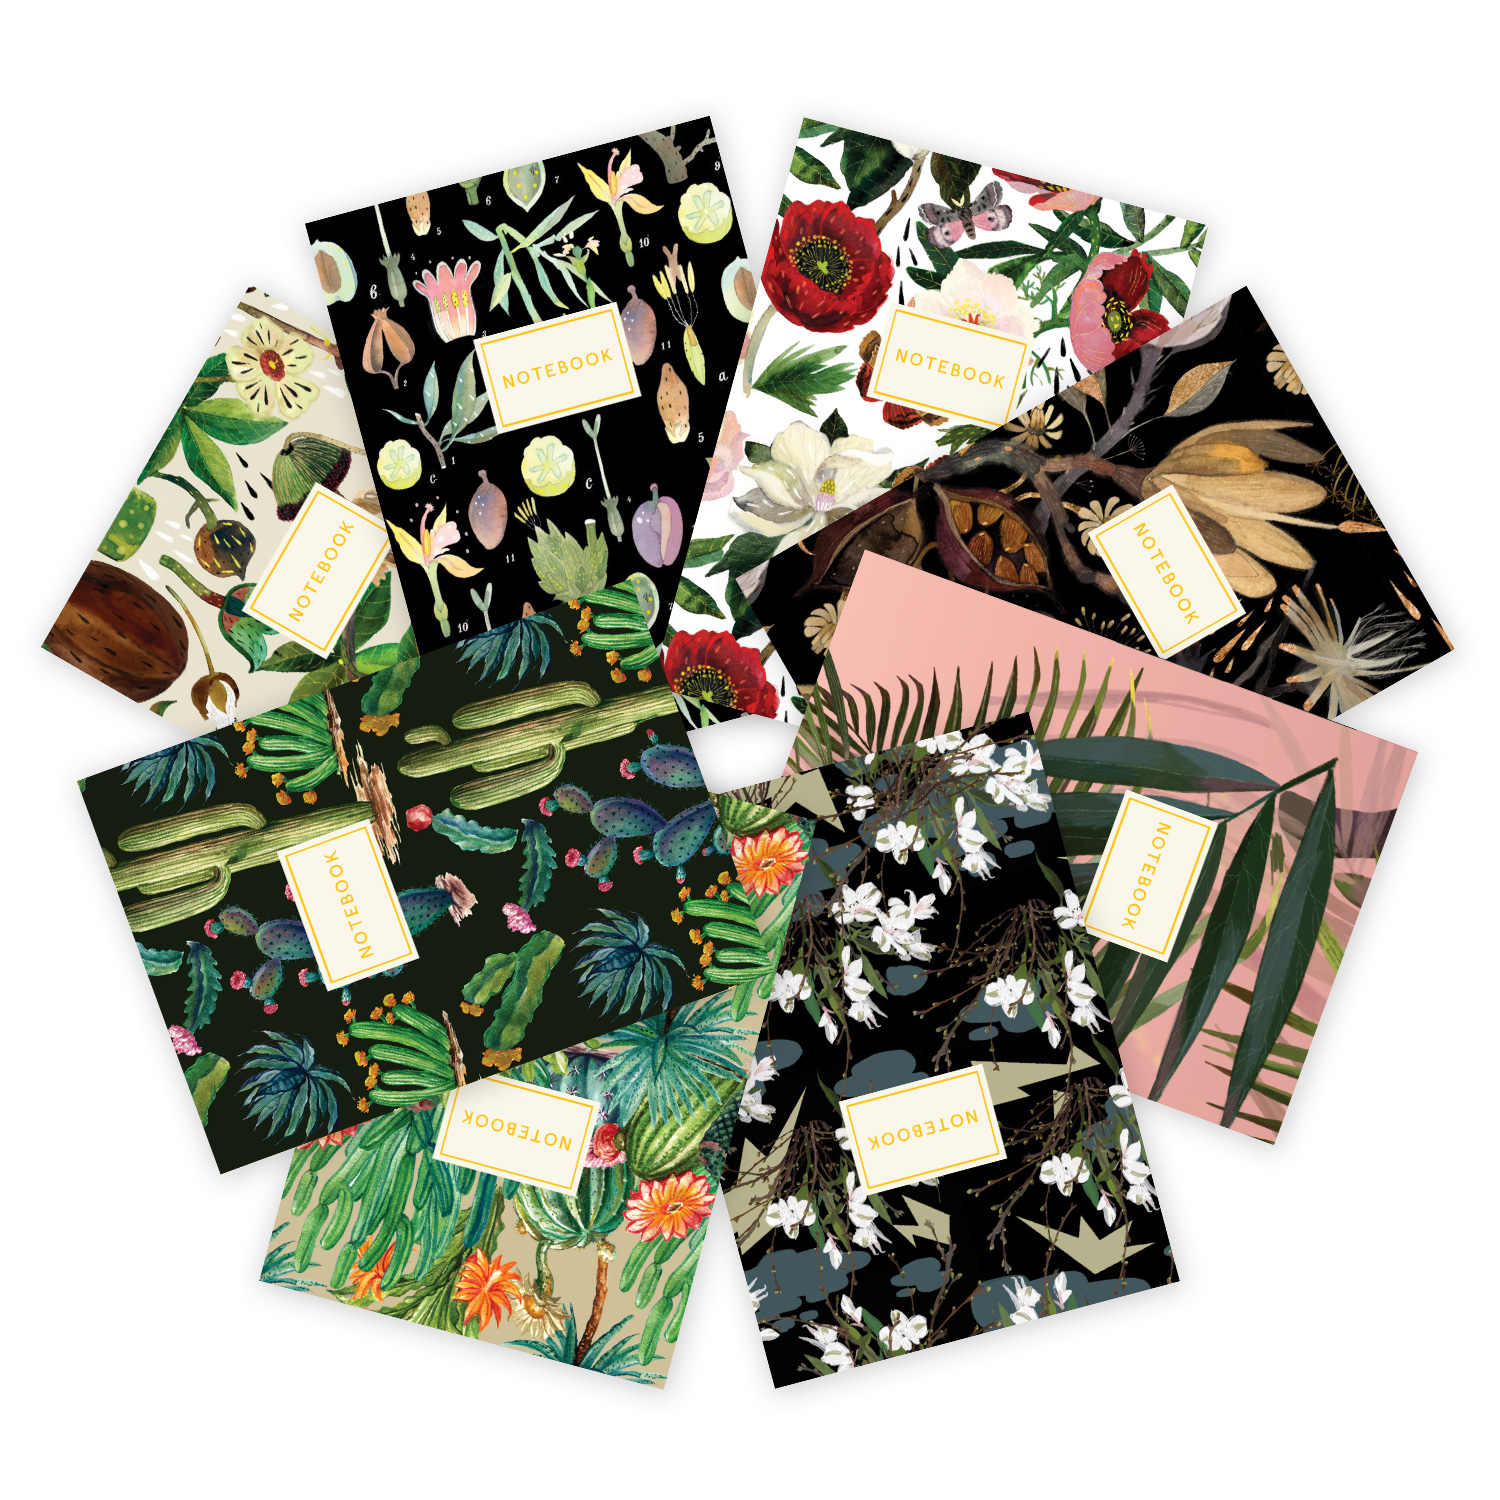 Selection of floral notebooks